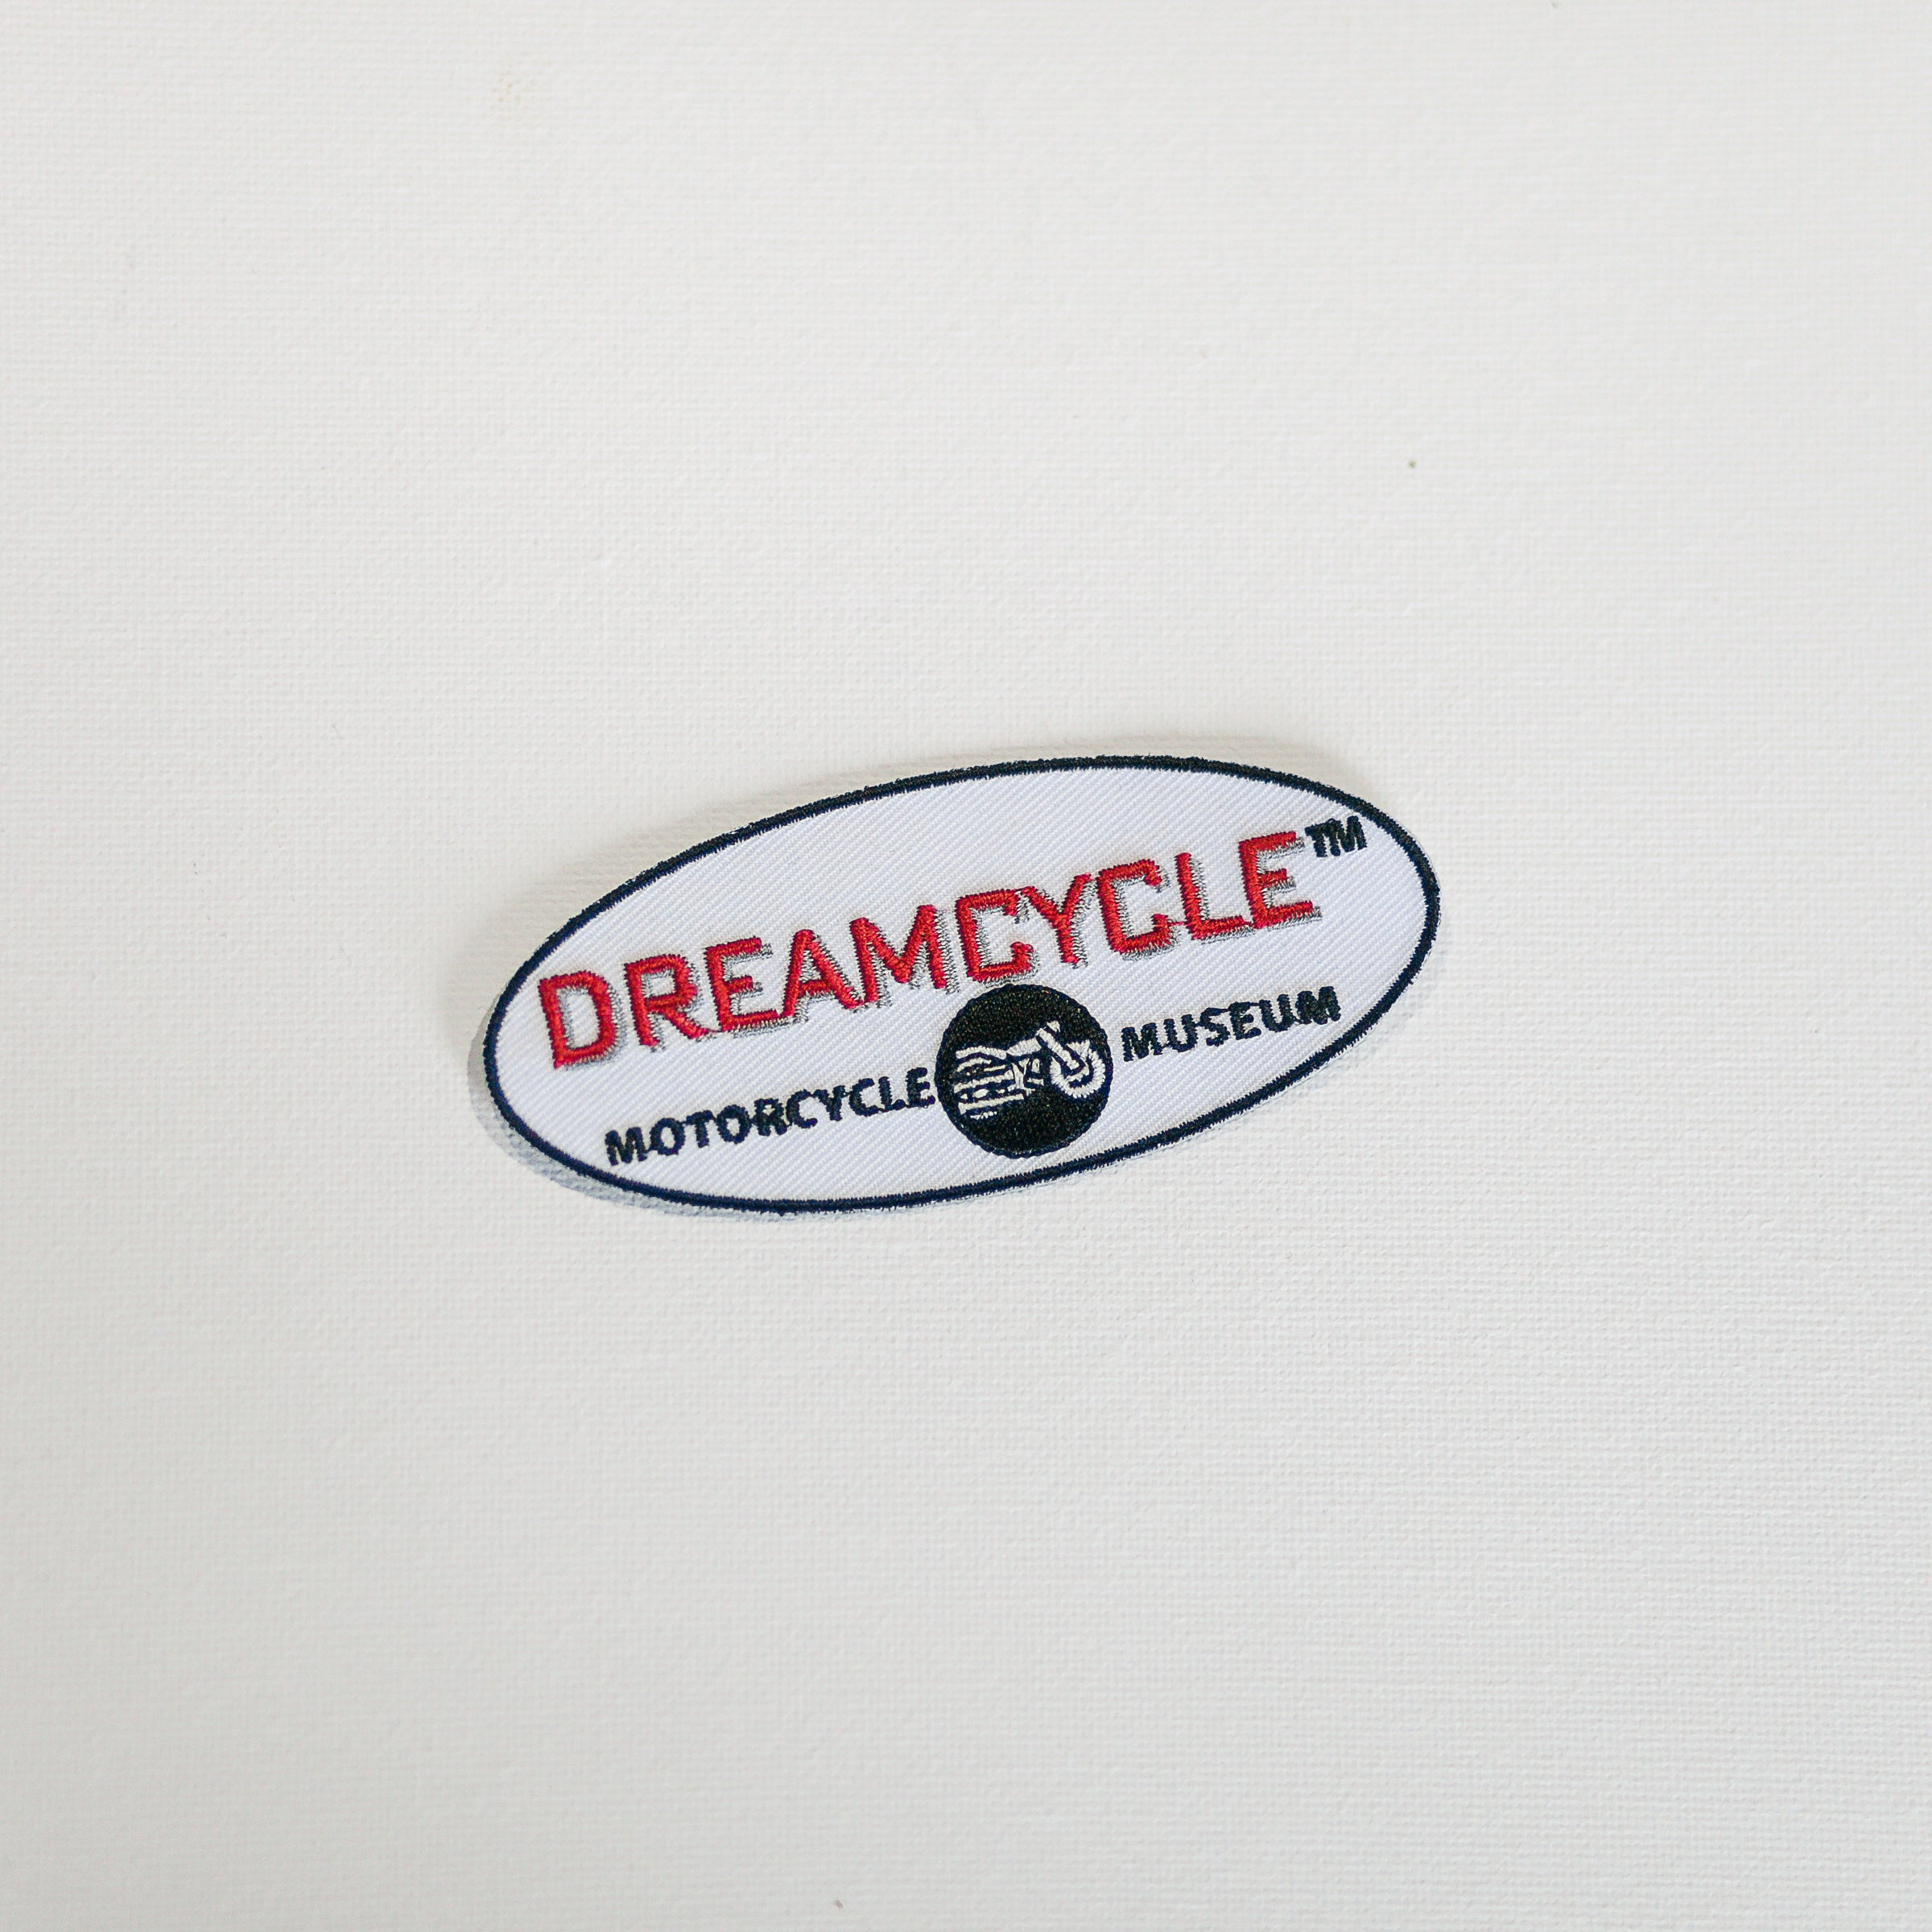 Dreamcycle Motorcycle Museum |  Dreamcycle patch on white background.